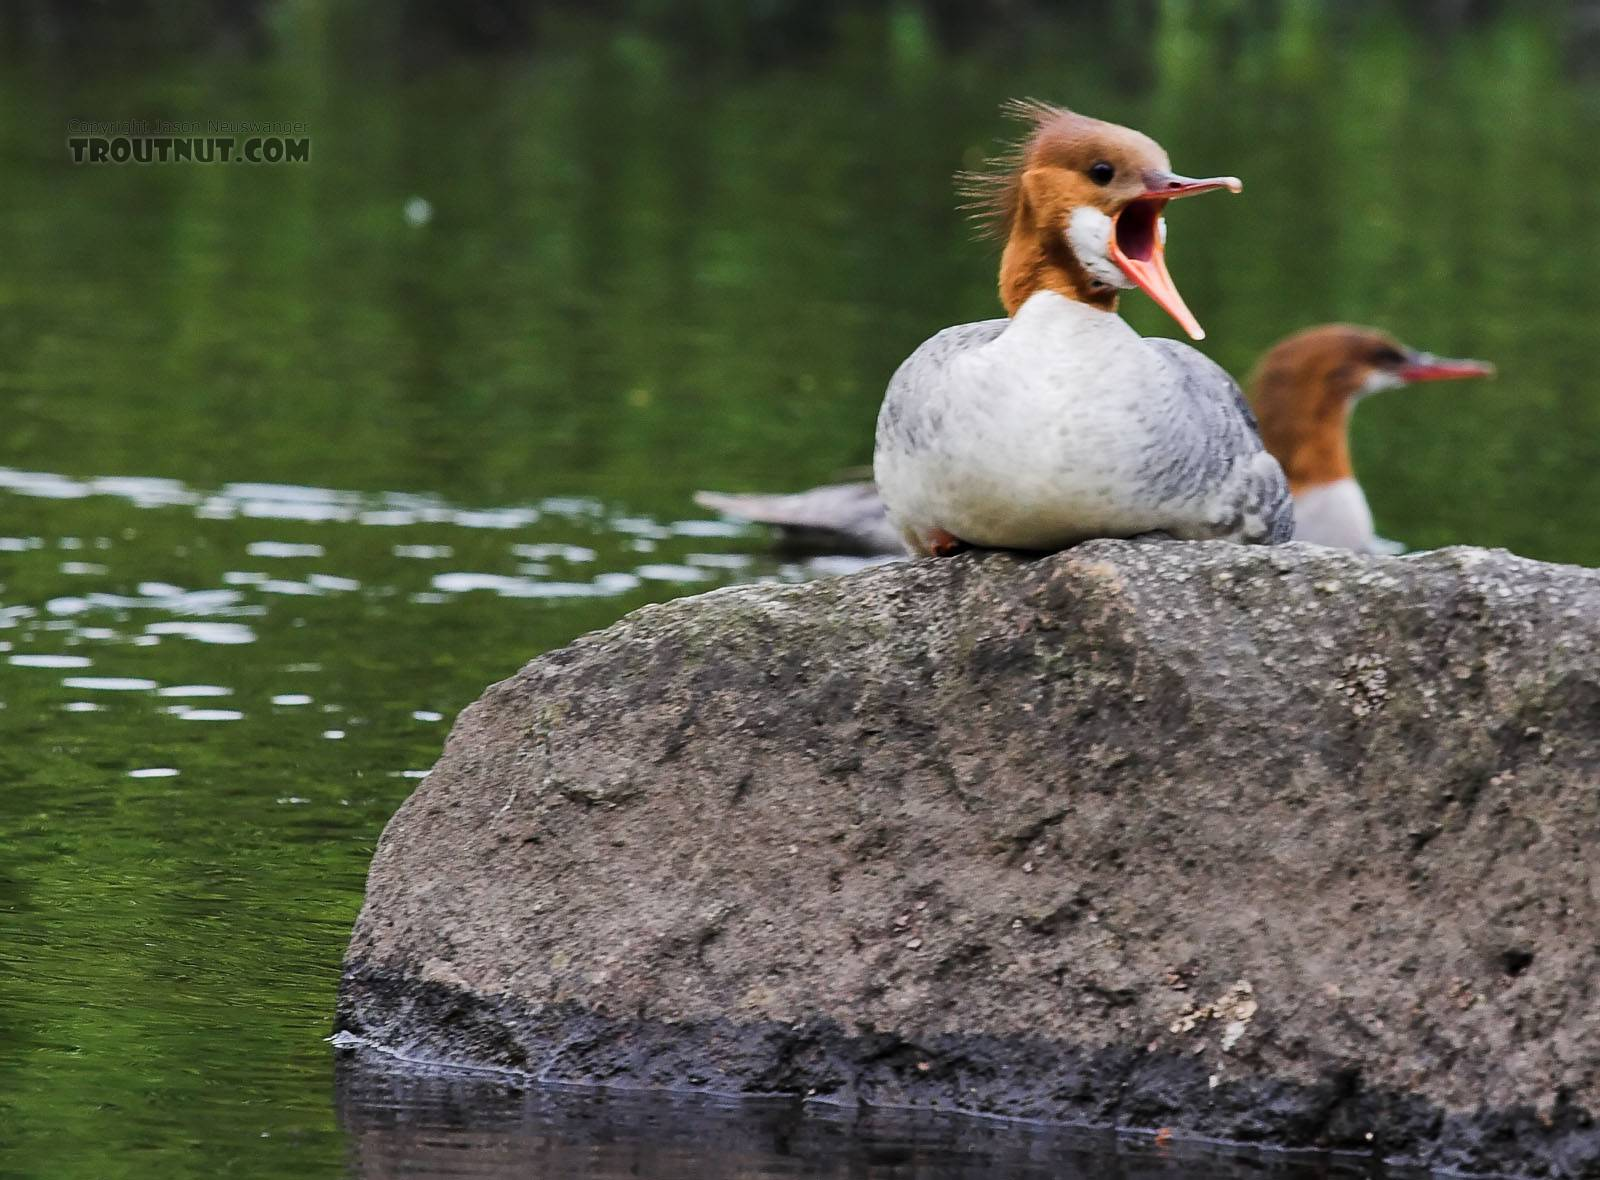 Look at the hole in that thing's mouth... no wonder mergansers are a threat to trout. From the Bois Brule River in Wisconsin.